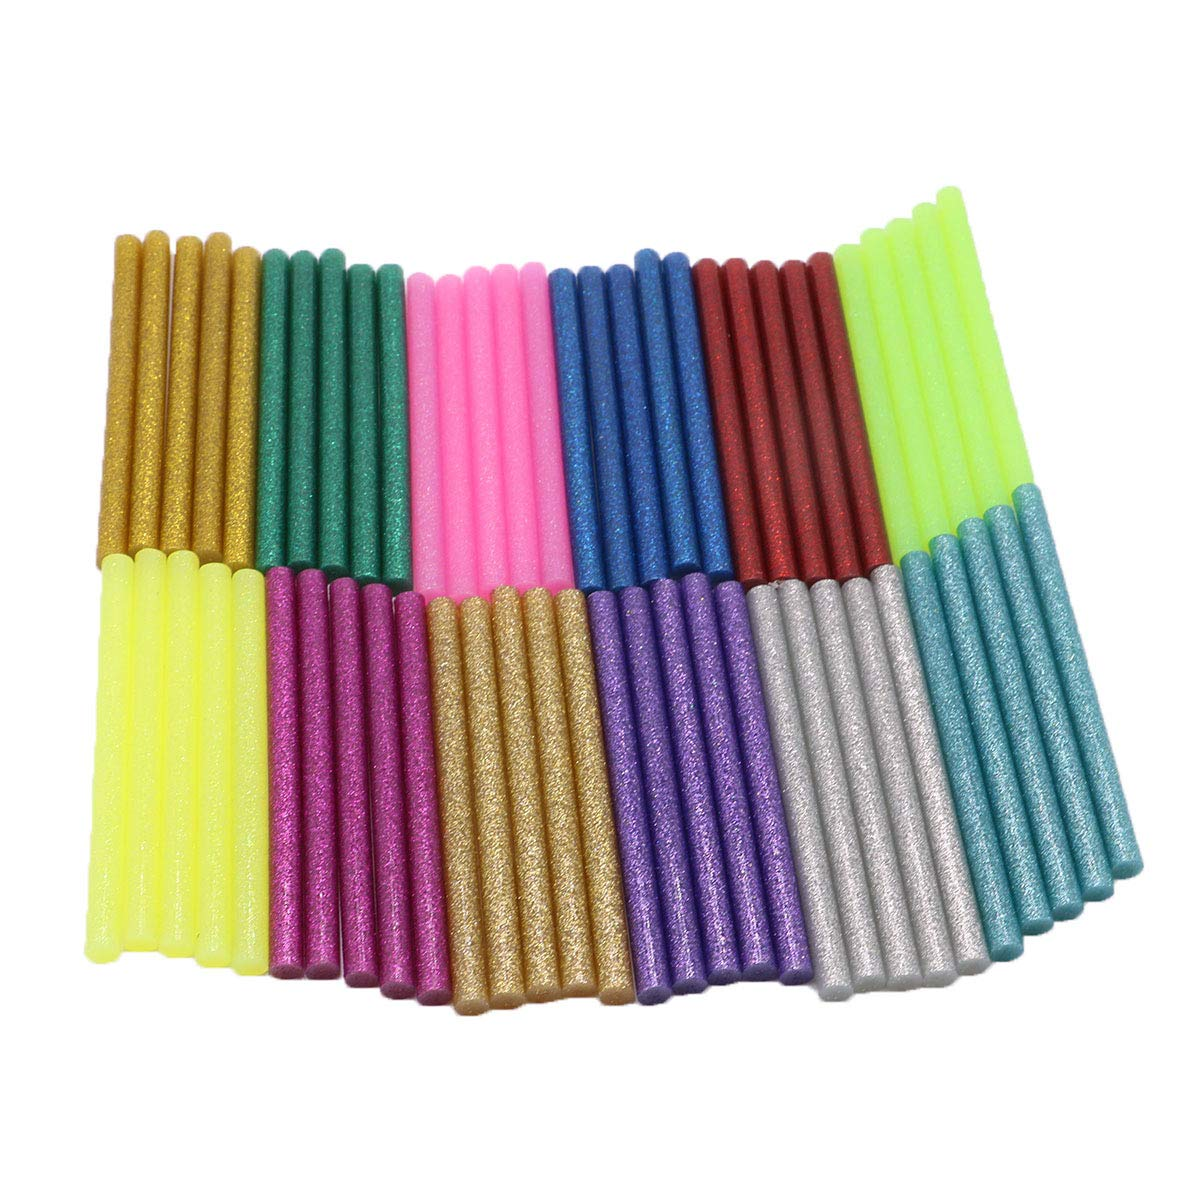 YEJI 60Pcs (12 Color)Hot Glue Sticks 0.27'' Diameter 4'' Length, Hot Melt Glue Sticks Mini Glitter for DIY Art Craft Woodworking, Suitable for Mini Hot Glue Gun Toy &DIY Repair Accessories